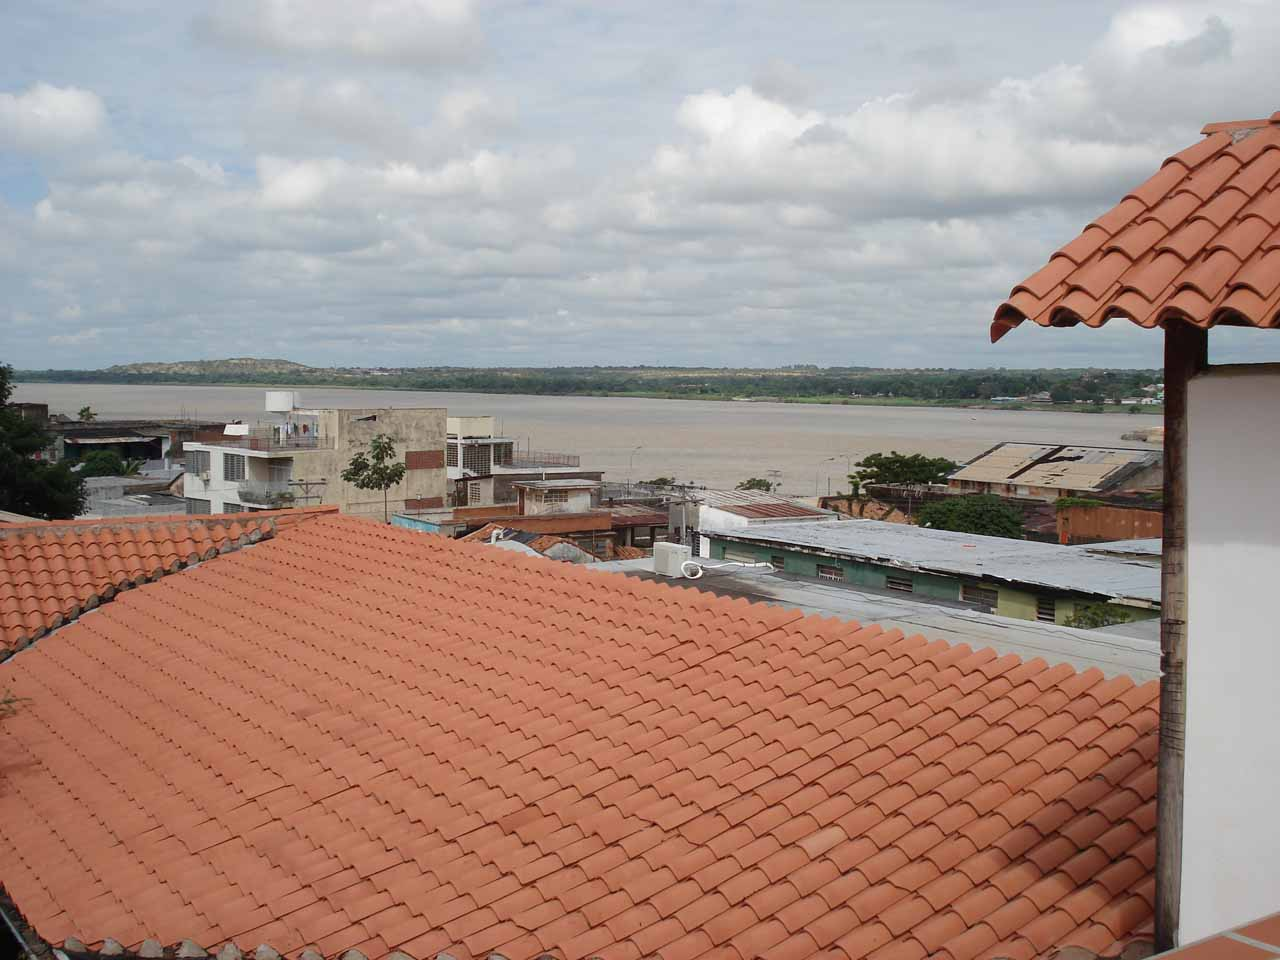 View from the roof of the Posada Angostura